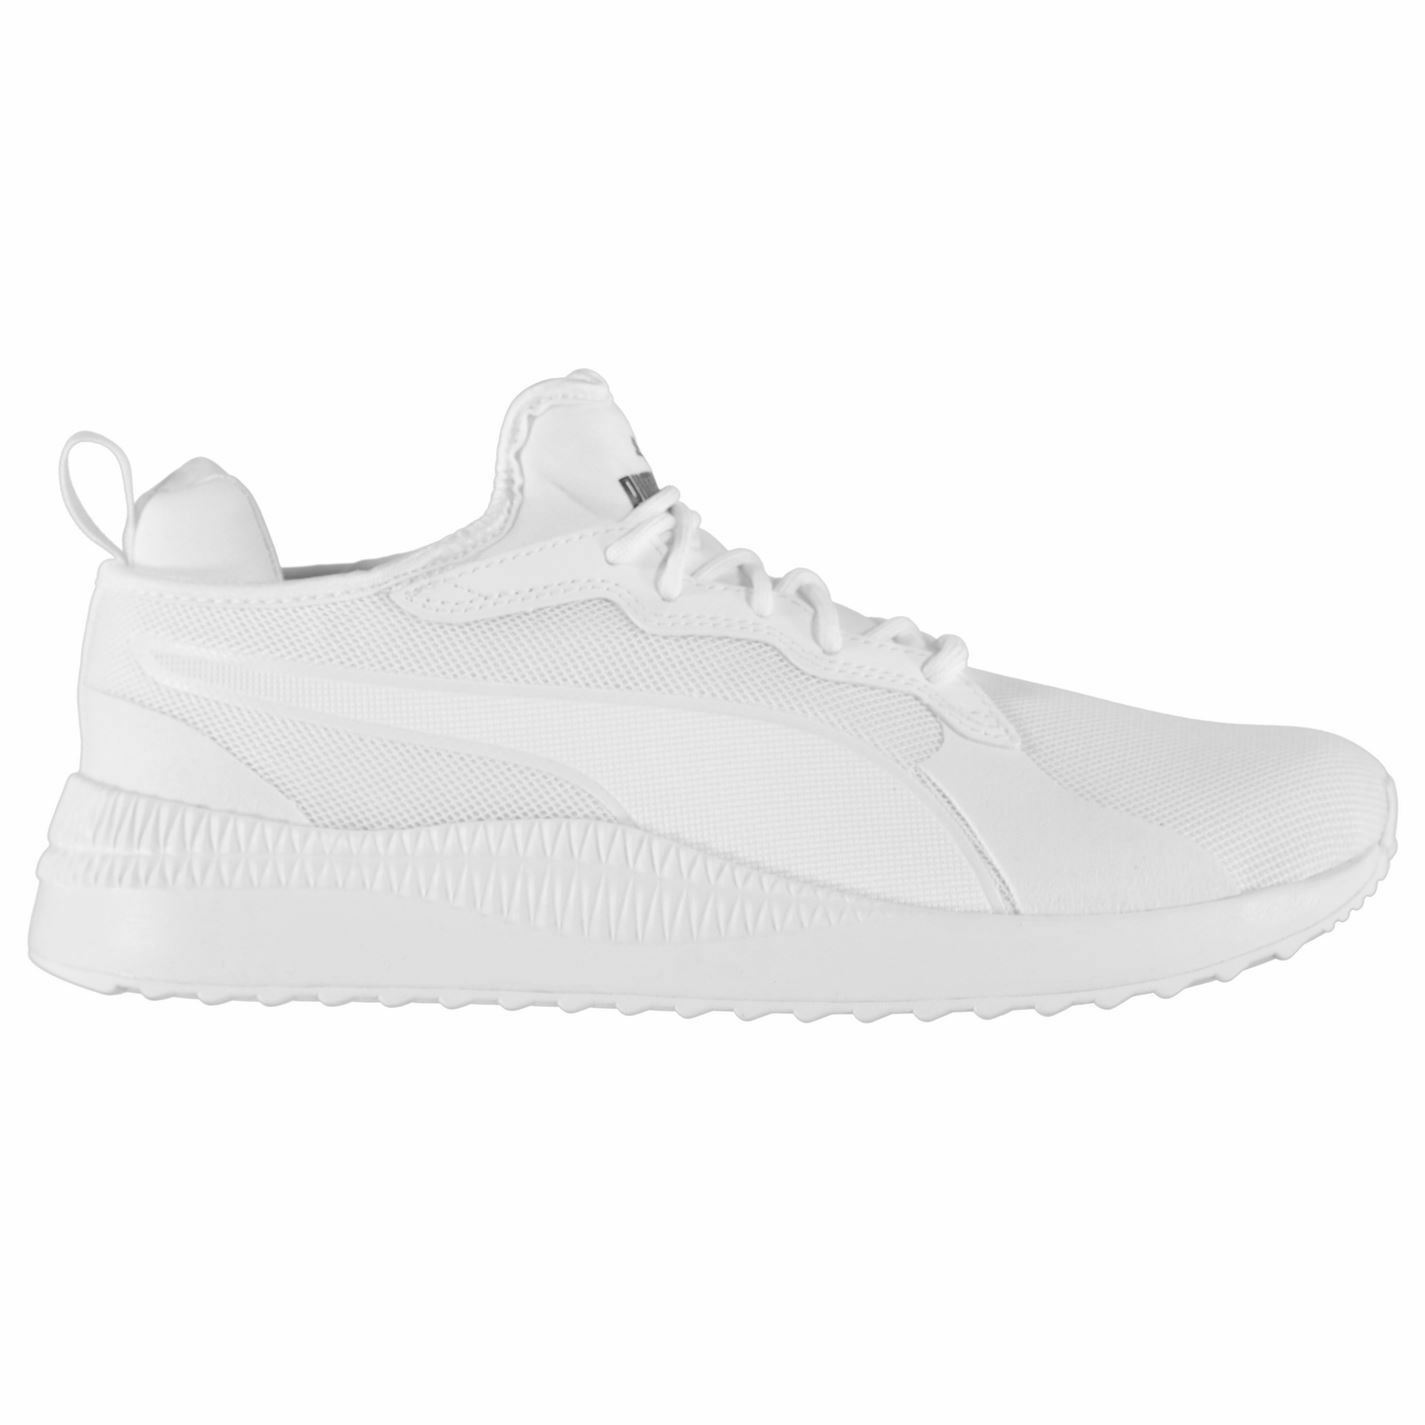 Puma Pacer Next Trainers Mens White Sports shoes Sneakers Sneakers Sneakers d0e810